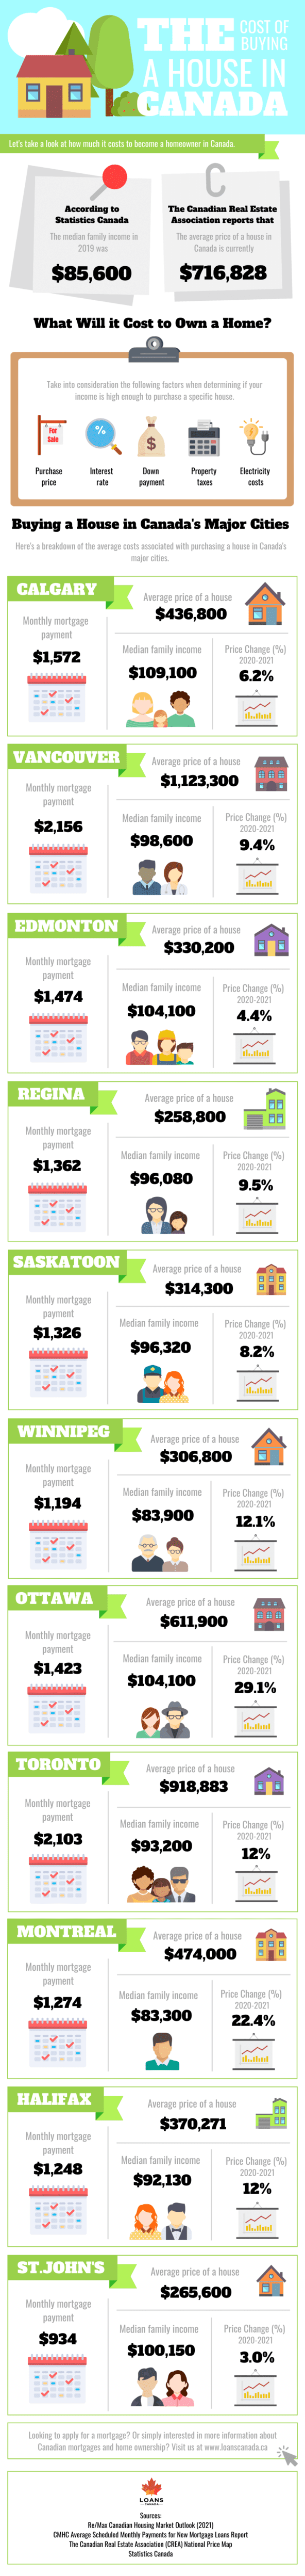 Cost of Buying a House in Canada